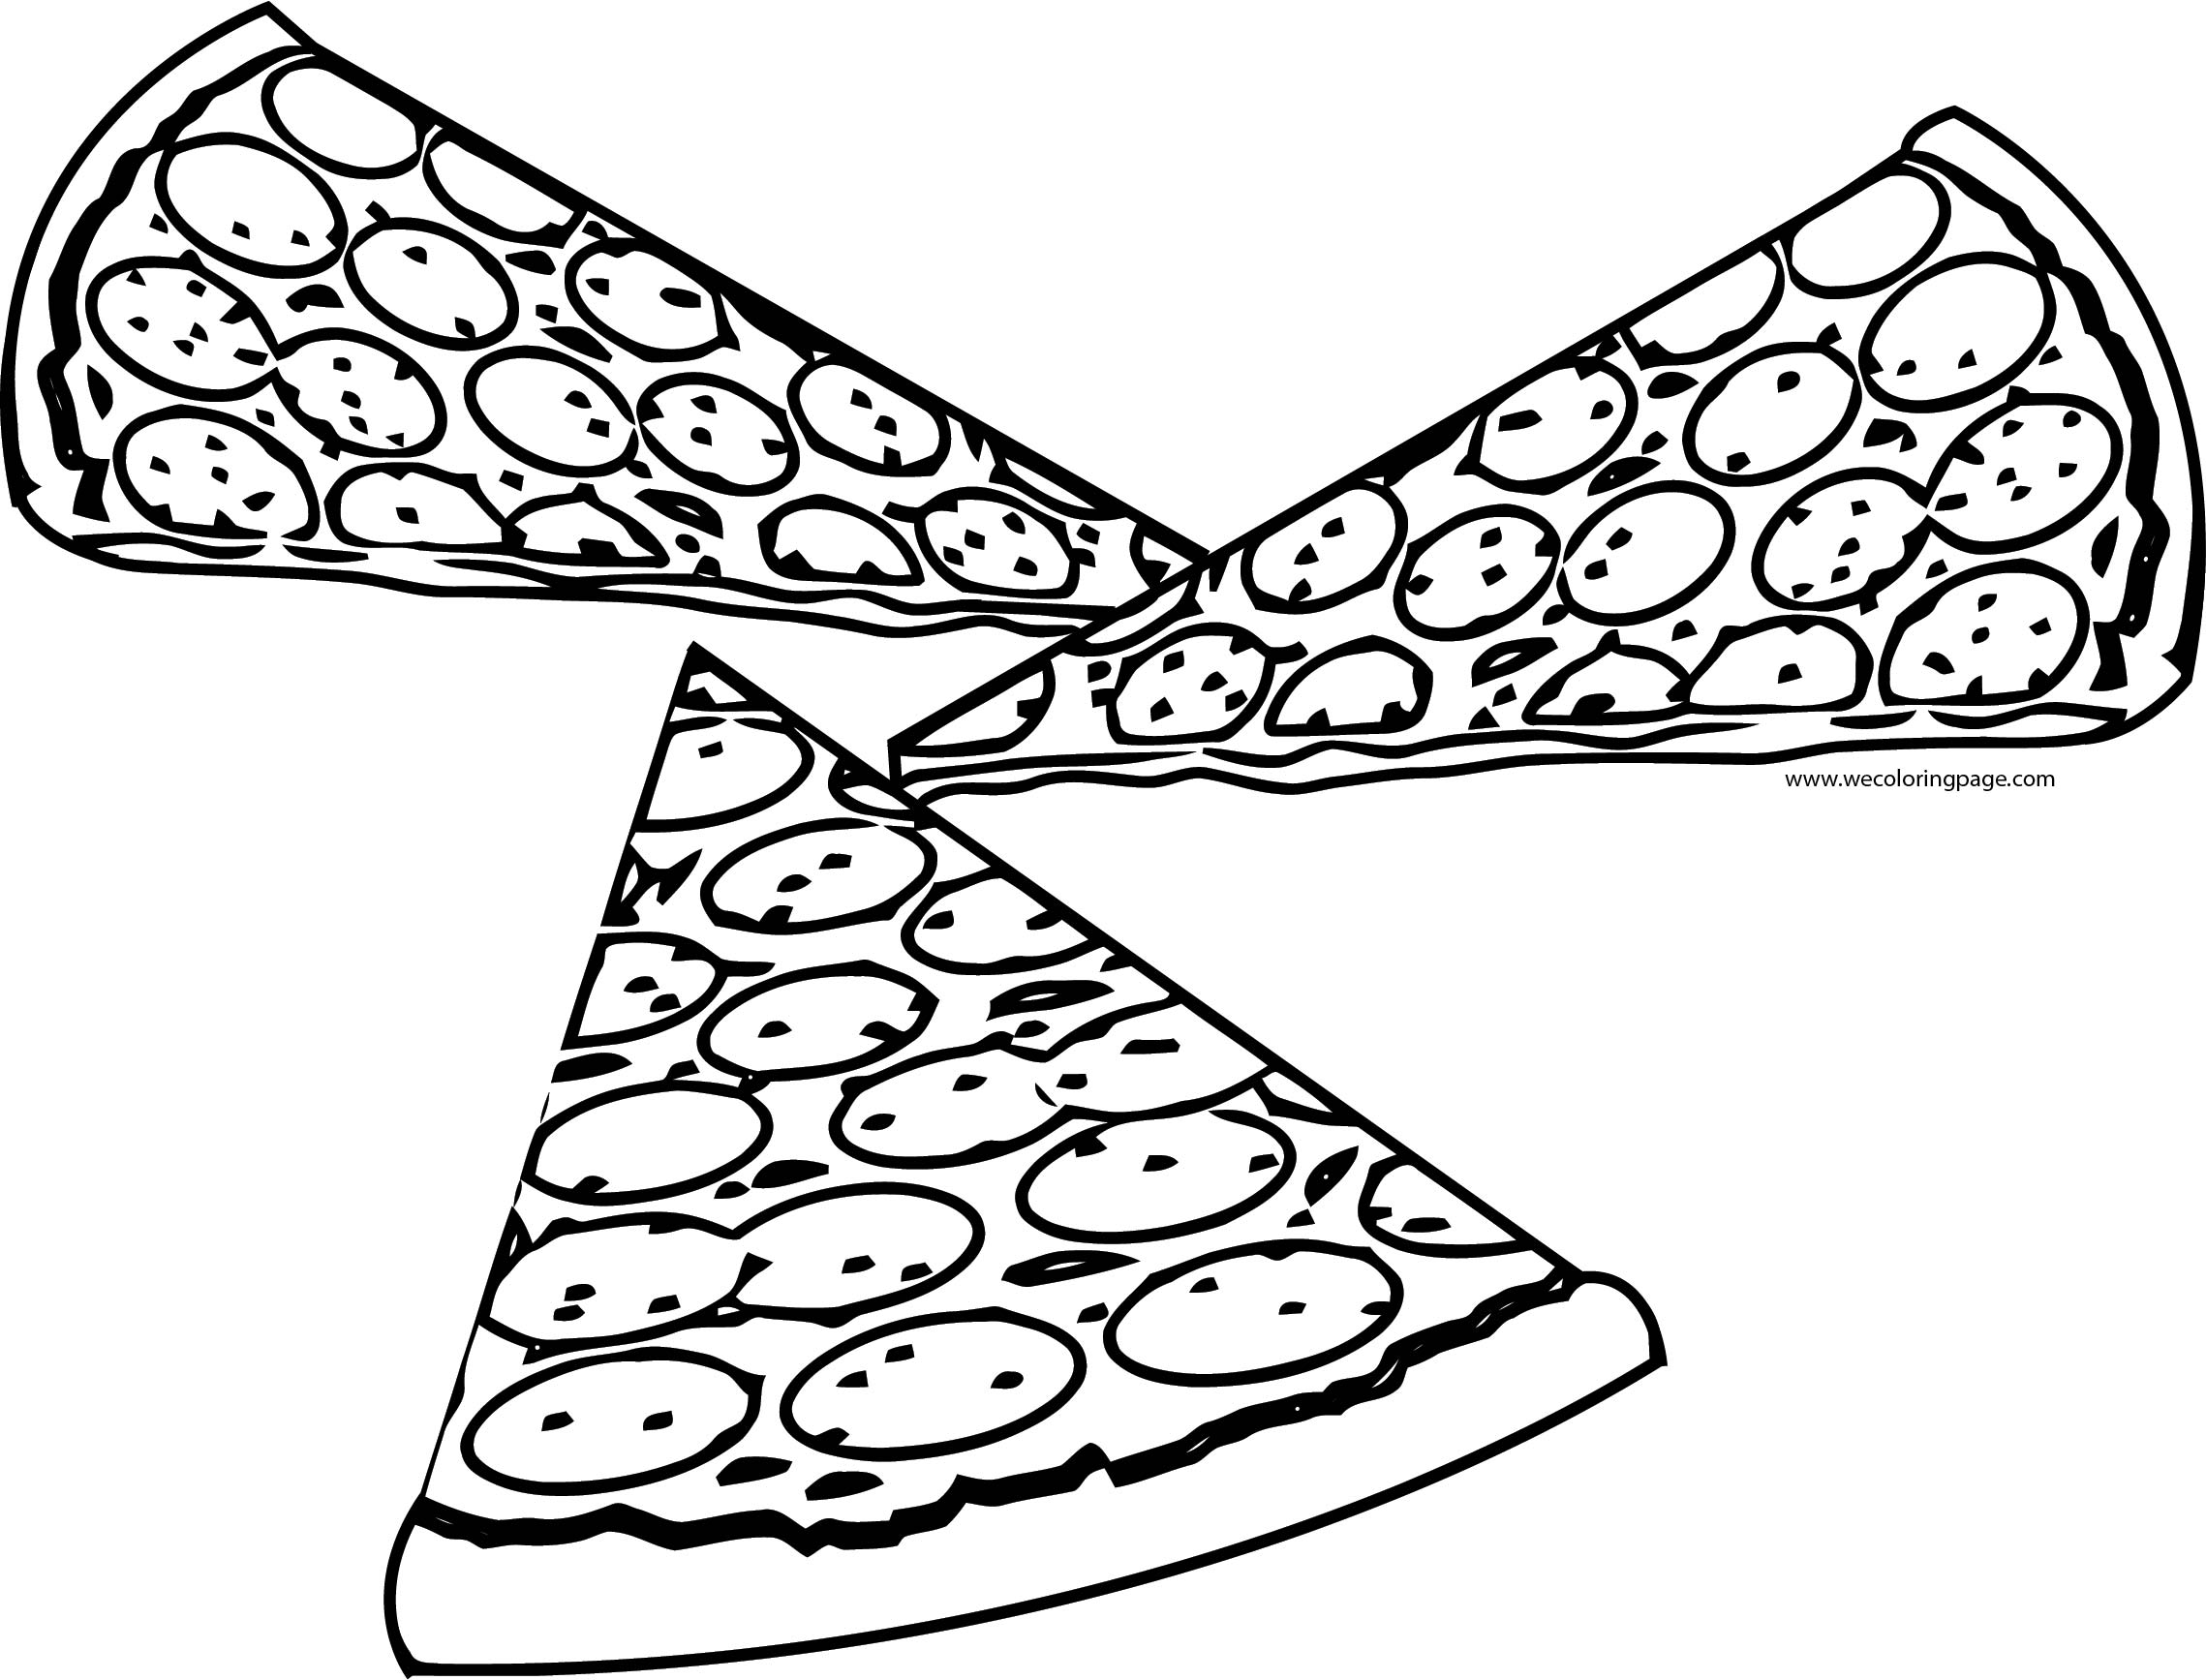 Pizza Coloring Page WeColoringPage 66